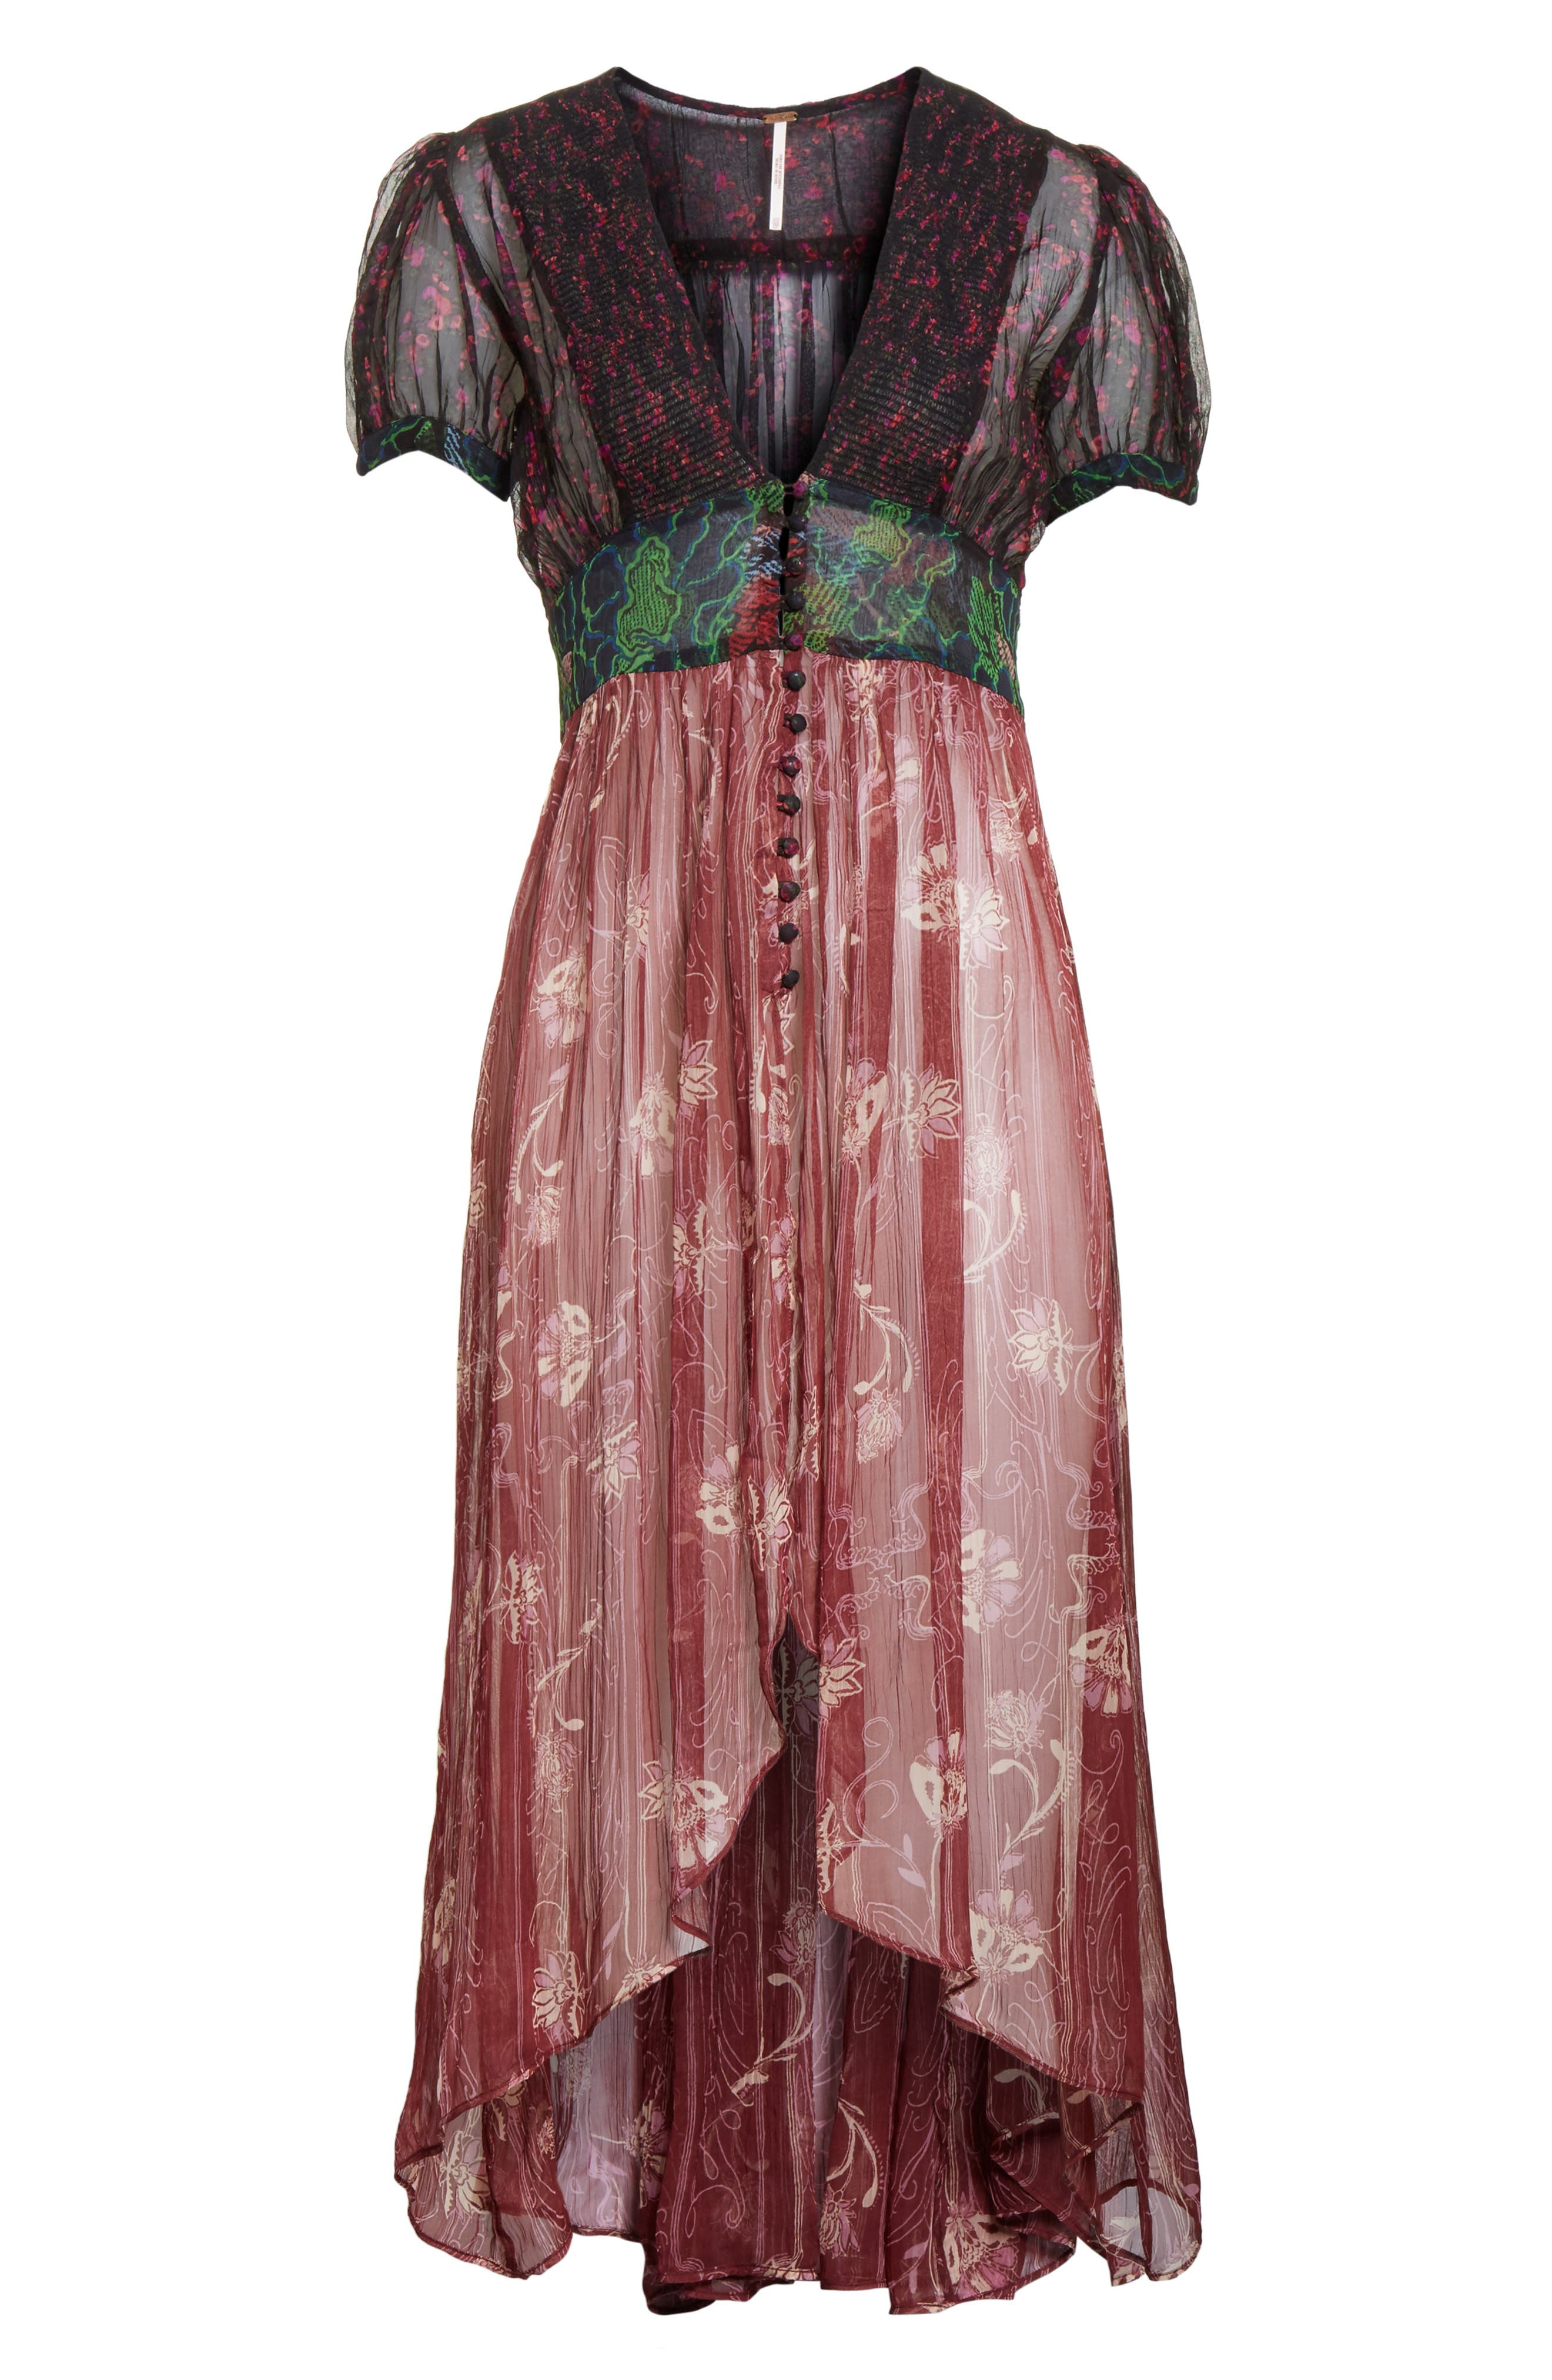 Daisy Fields Maxi Top,                             Alternate thumbnail 6, color,                             001